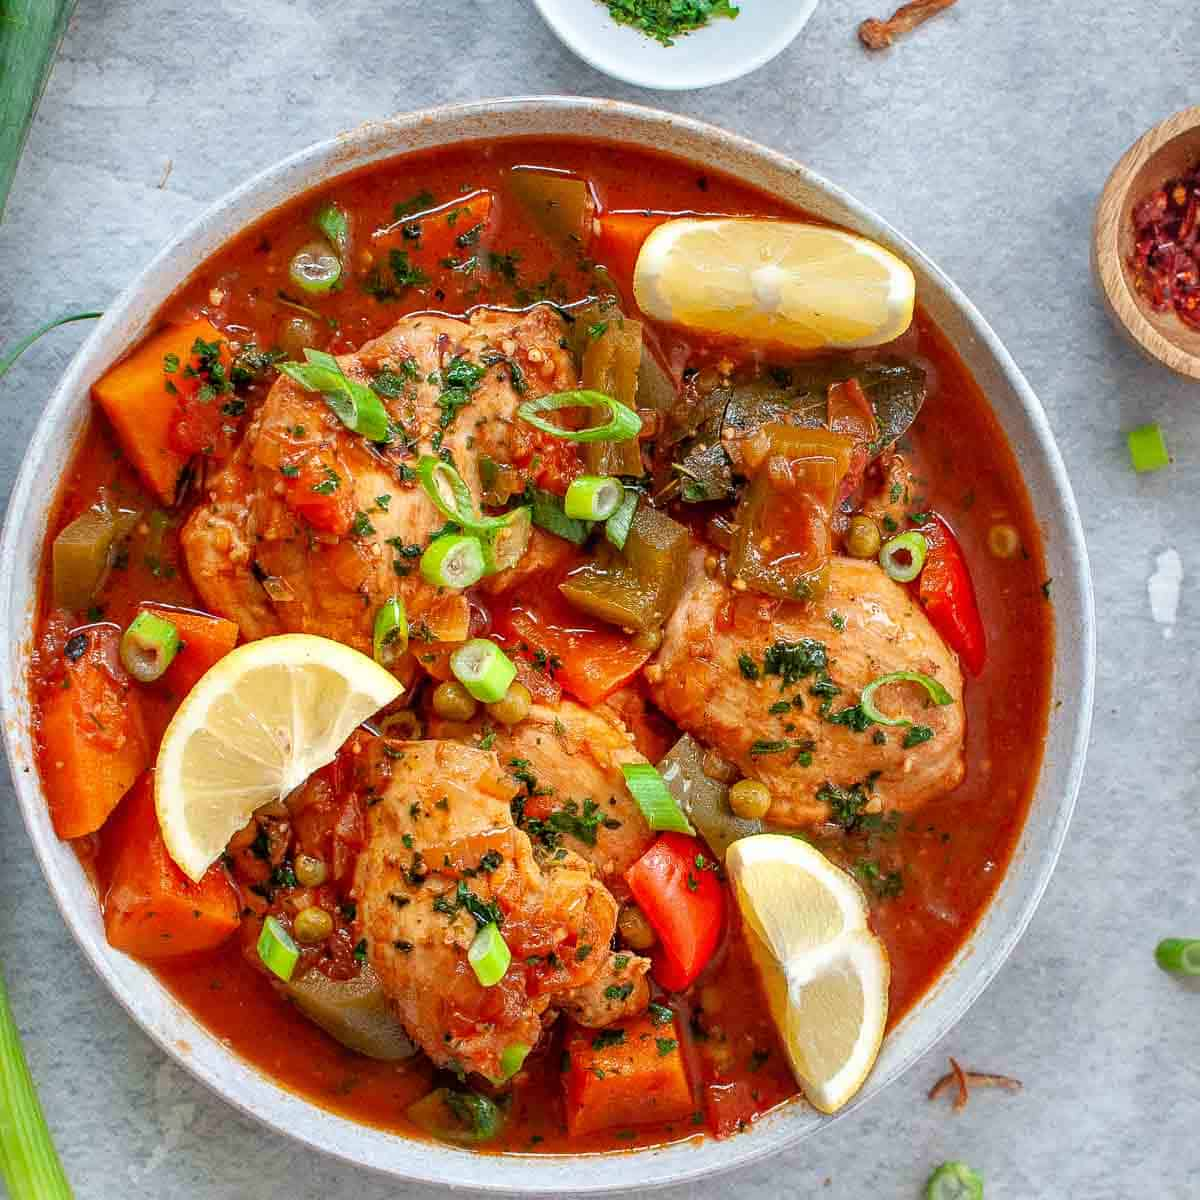 Chicken afritada stew in a bowl with lemon